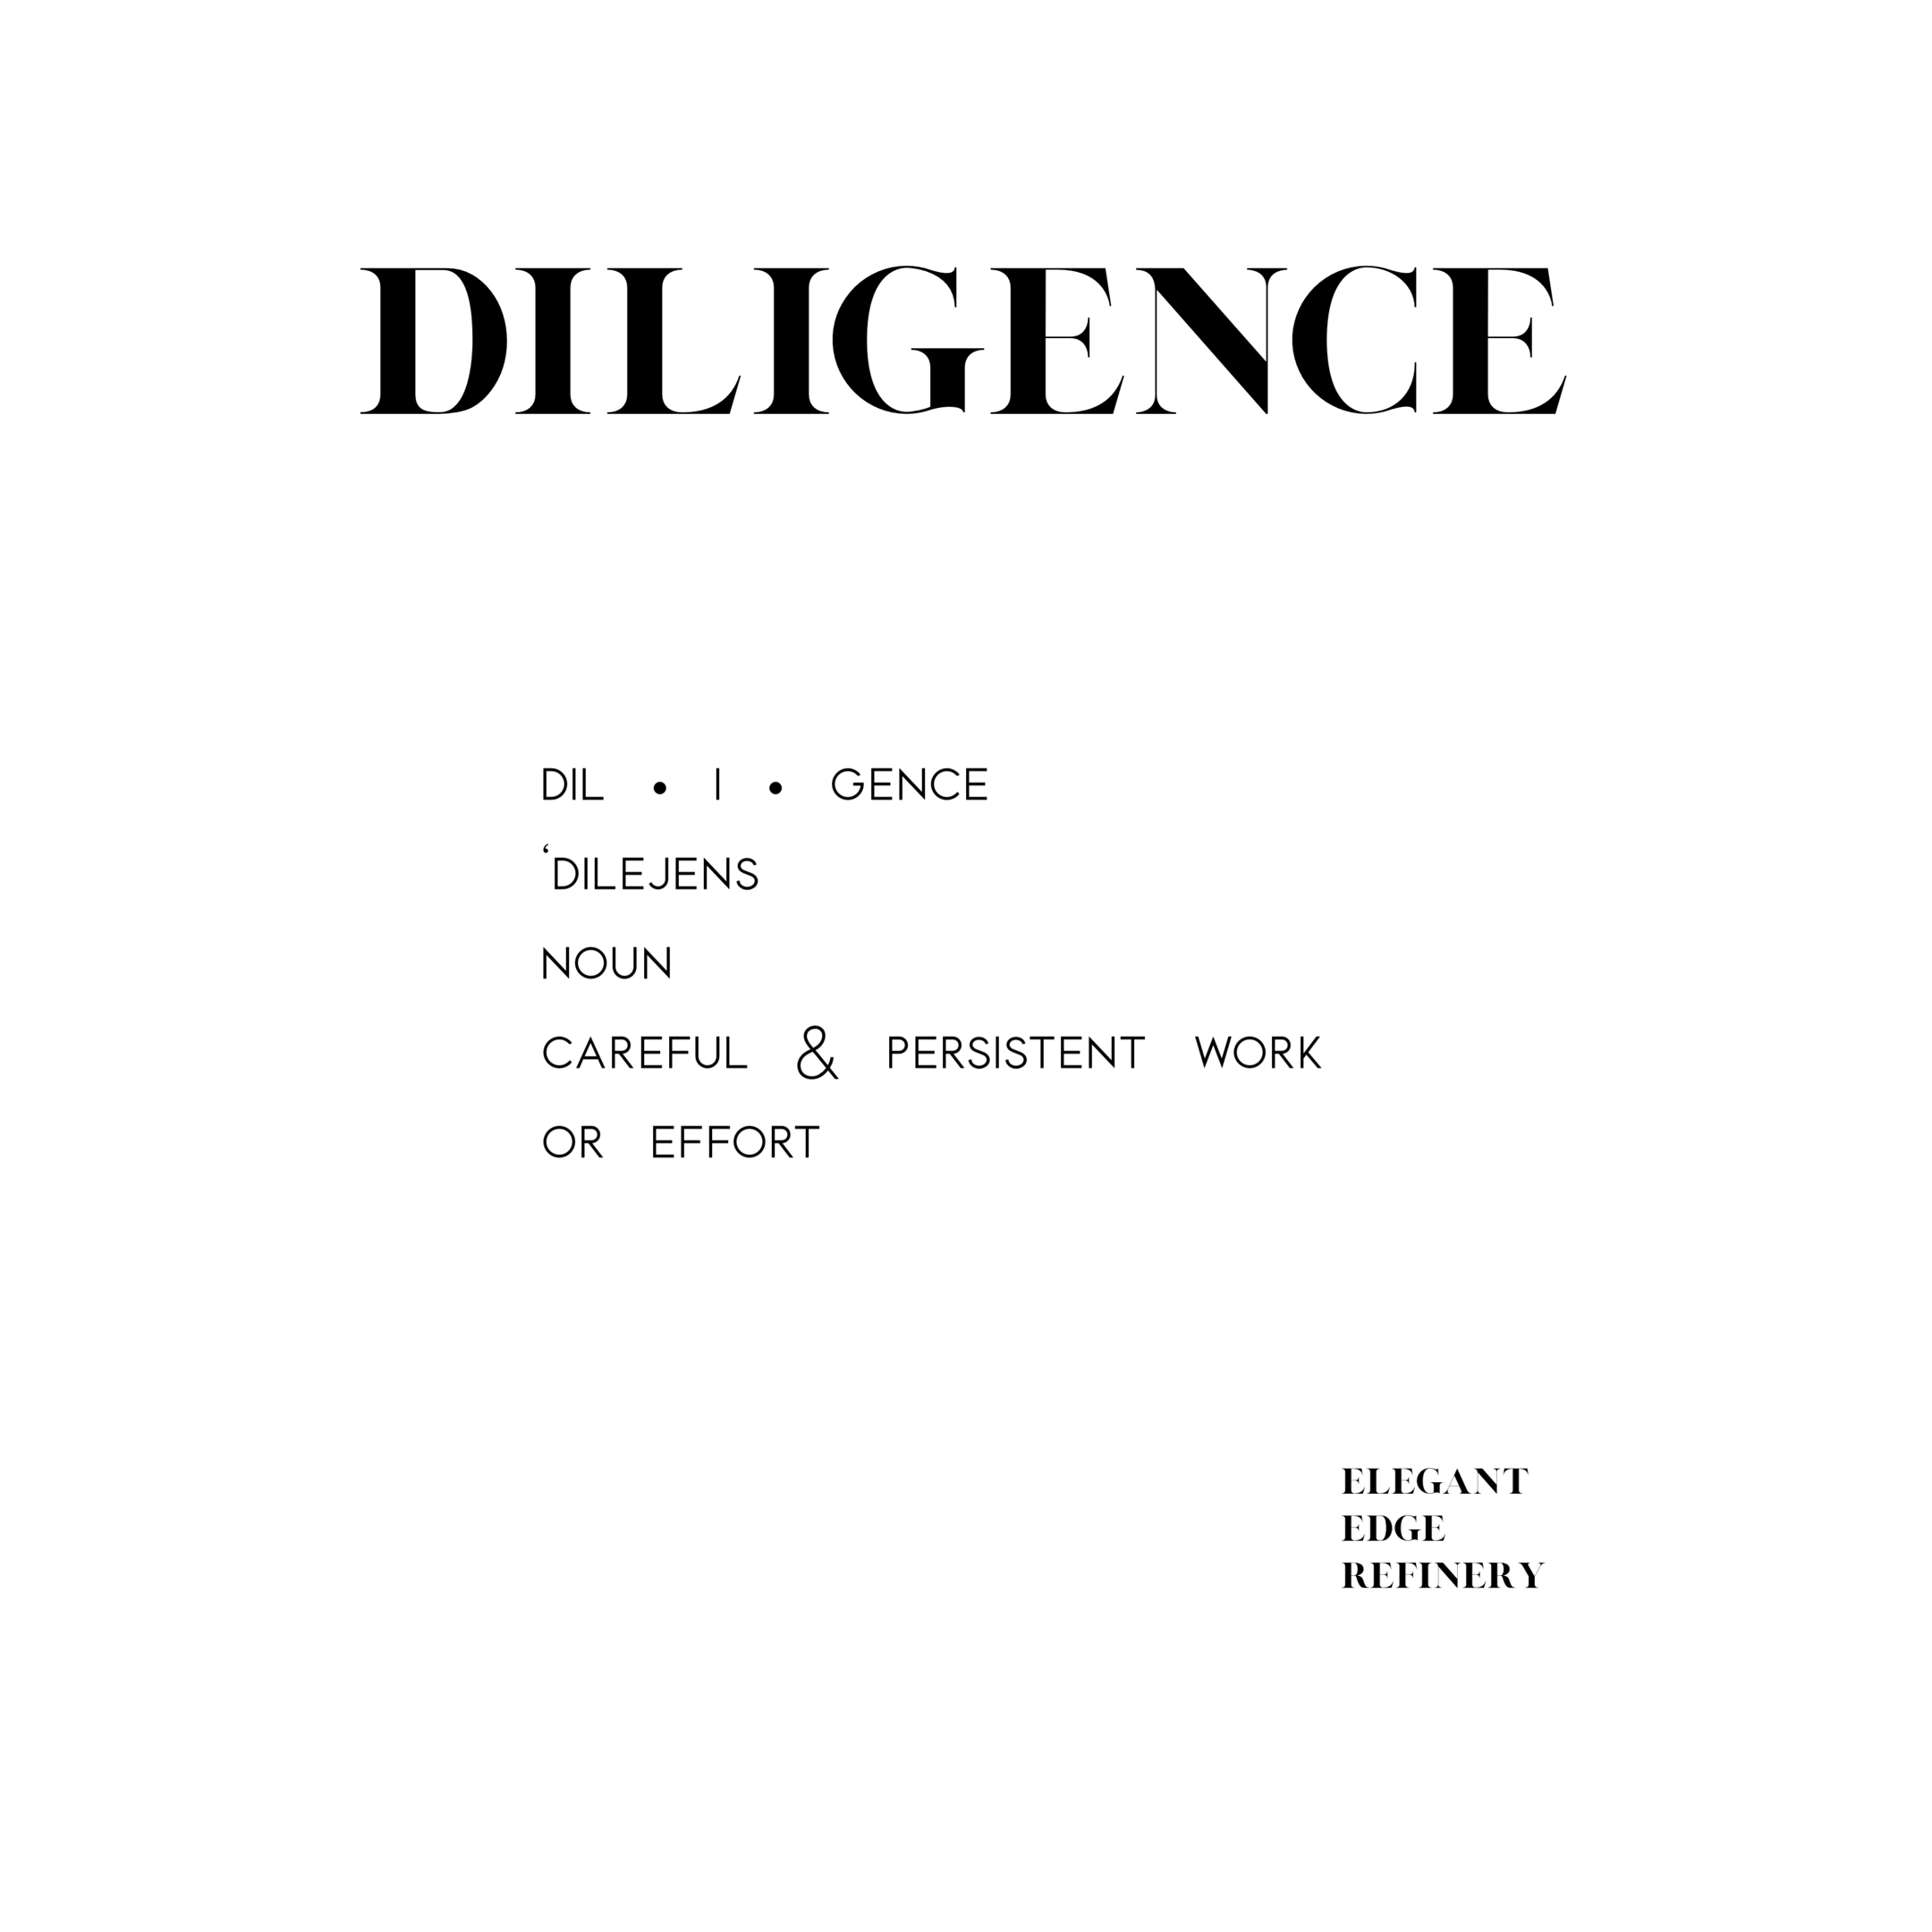 DILIGENCE.png